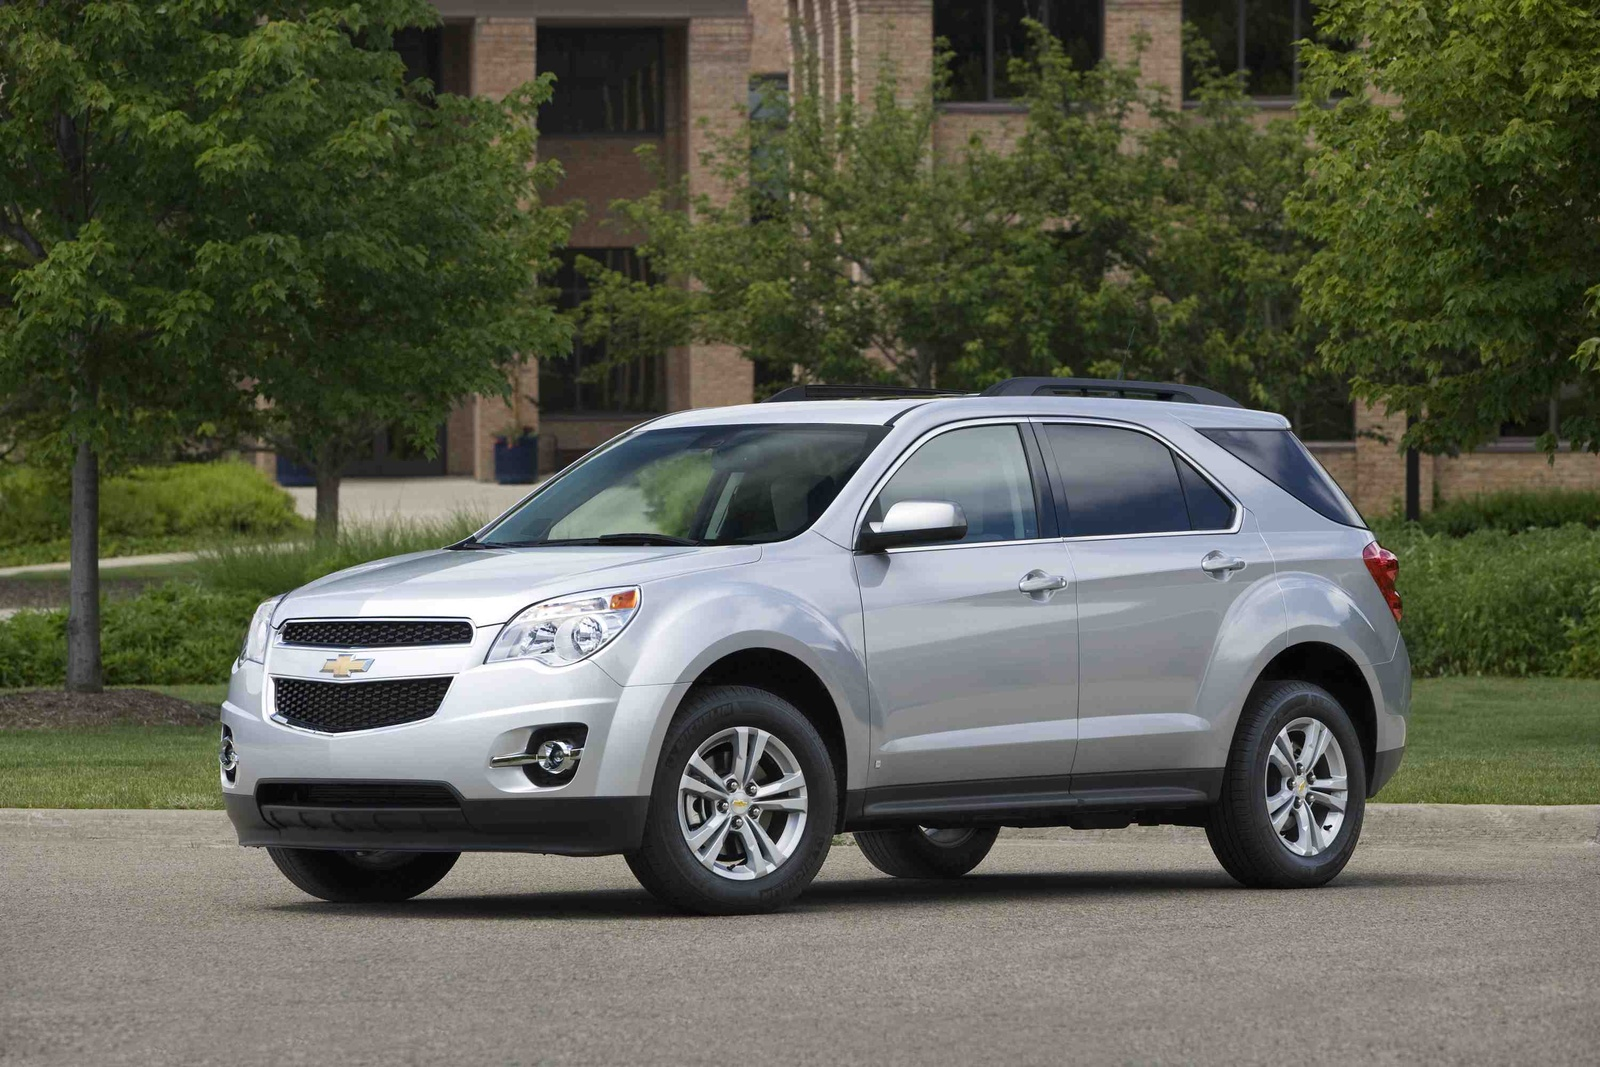 My Perfect Chevrolet Equinox 3dtuning Probably The Best Car 1990 Ford Mustang Wiring Diagram In Color Suv 2010